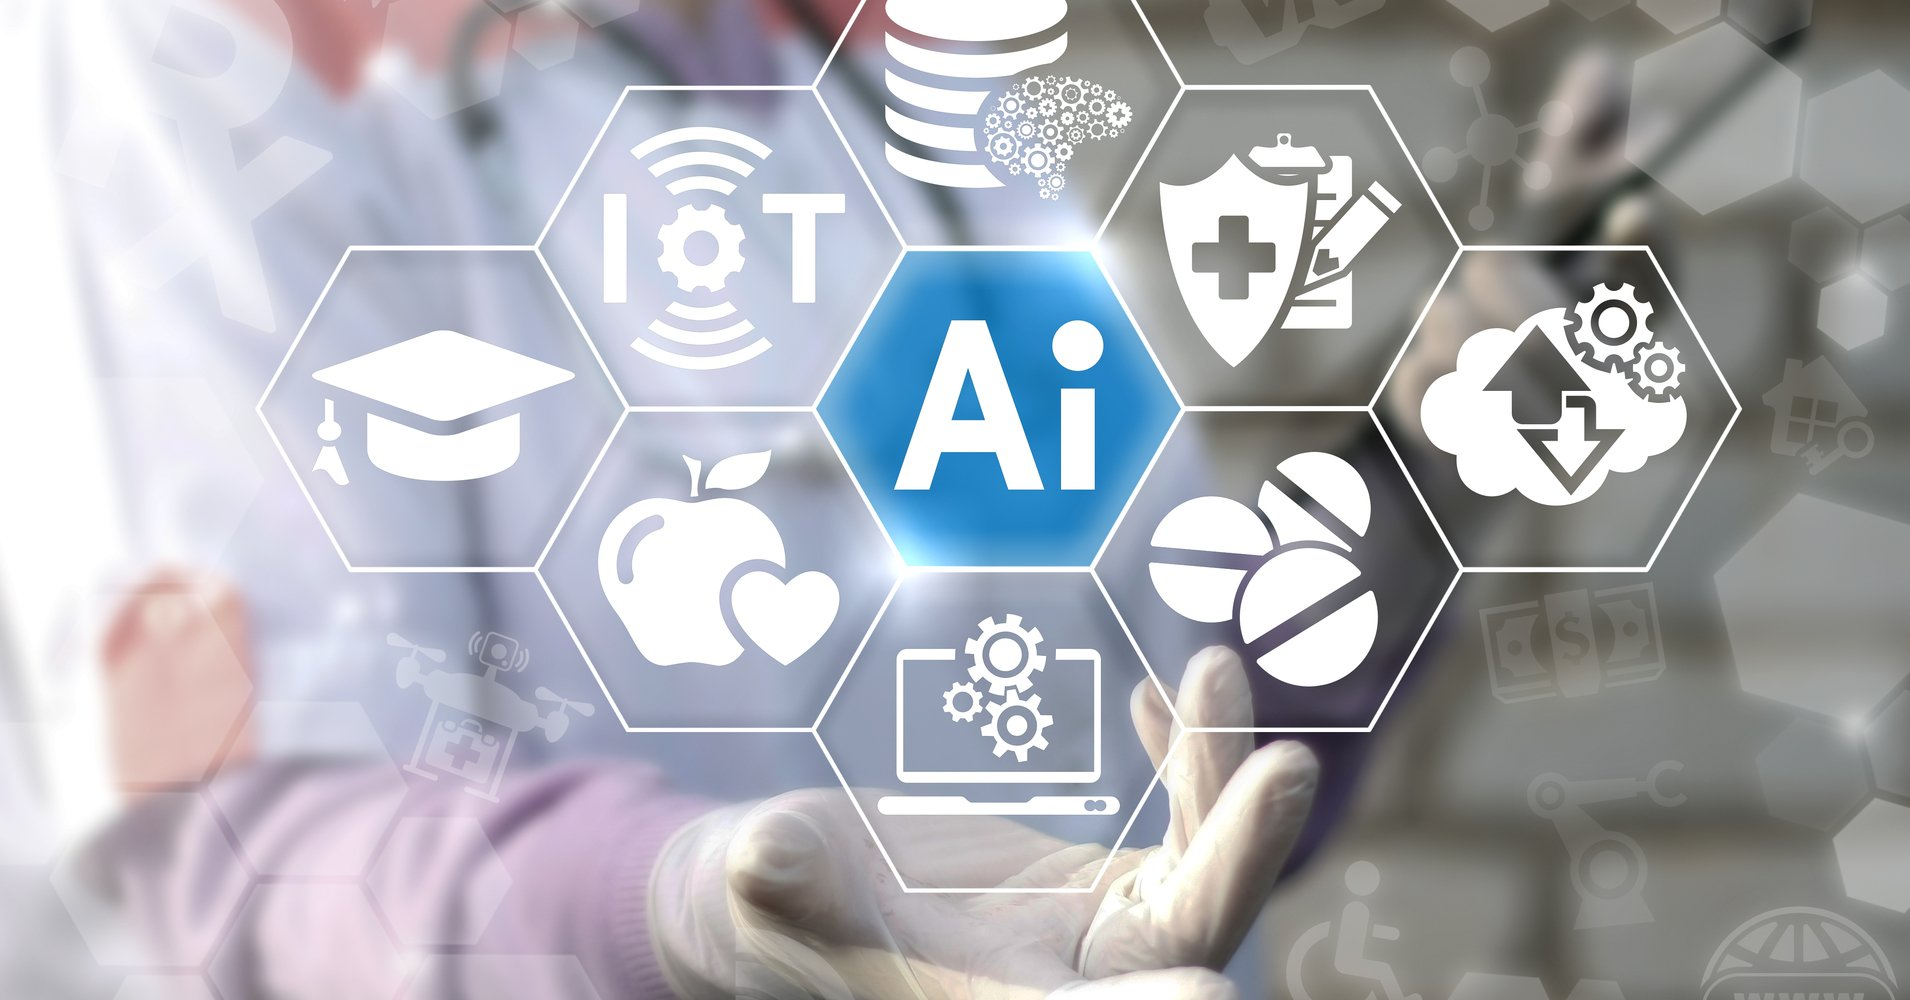 Leverage AI to revolutionize and advance healthcare